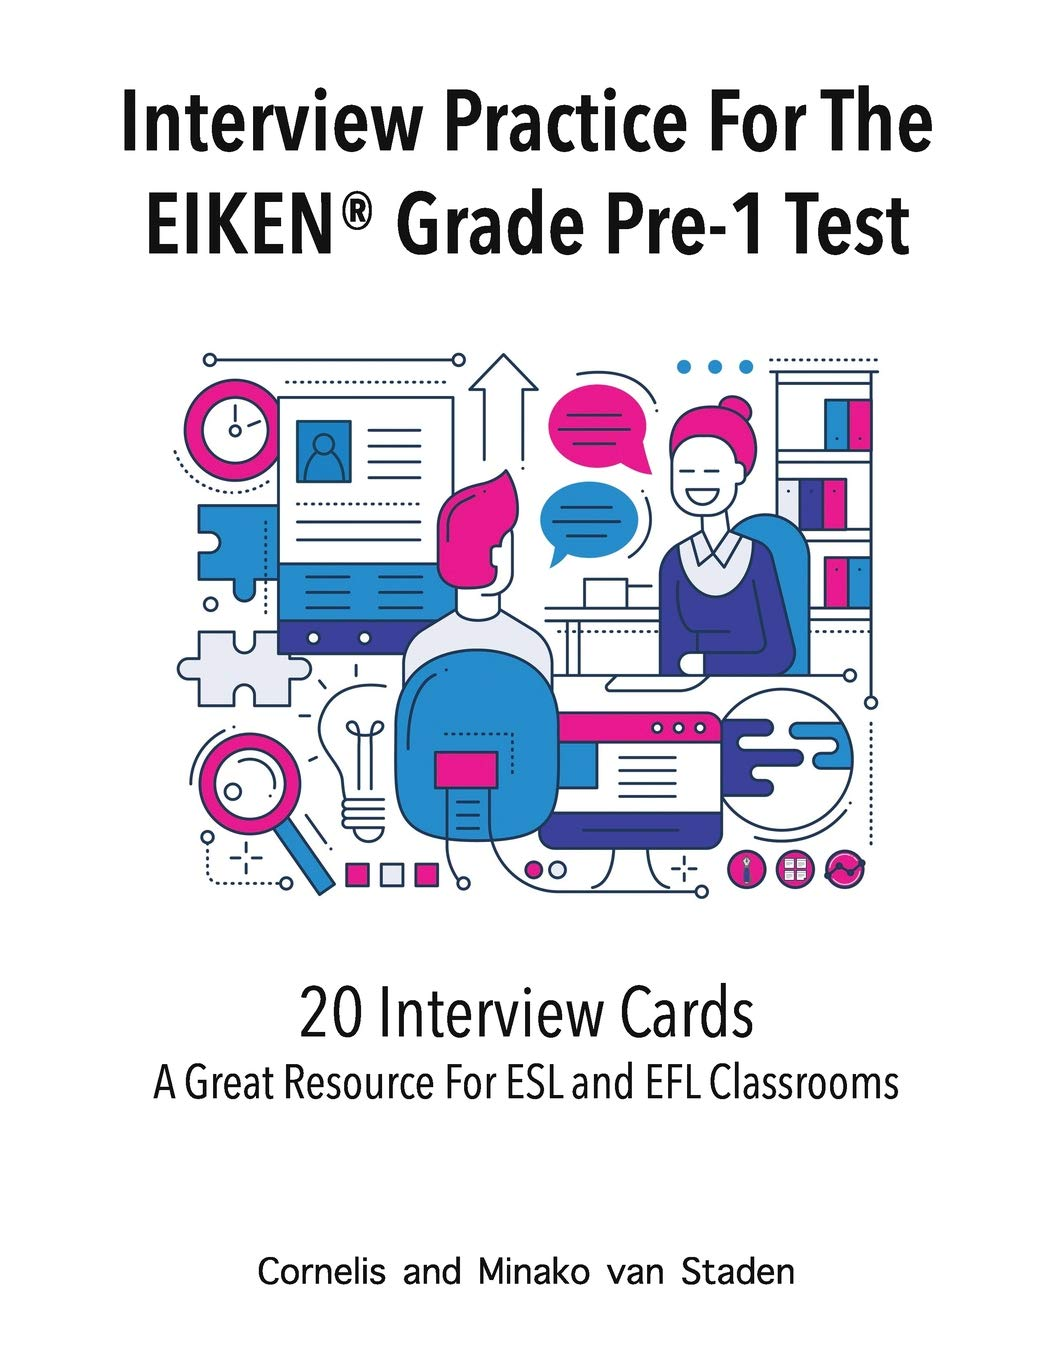 Interview Practice For The EIKEN© Grade Pre-1 Test: A Great